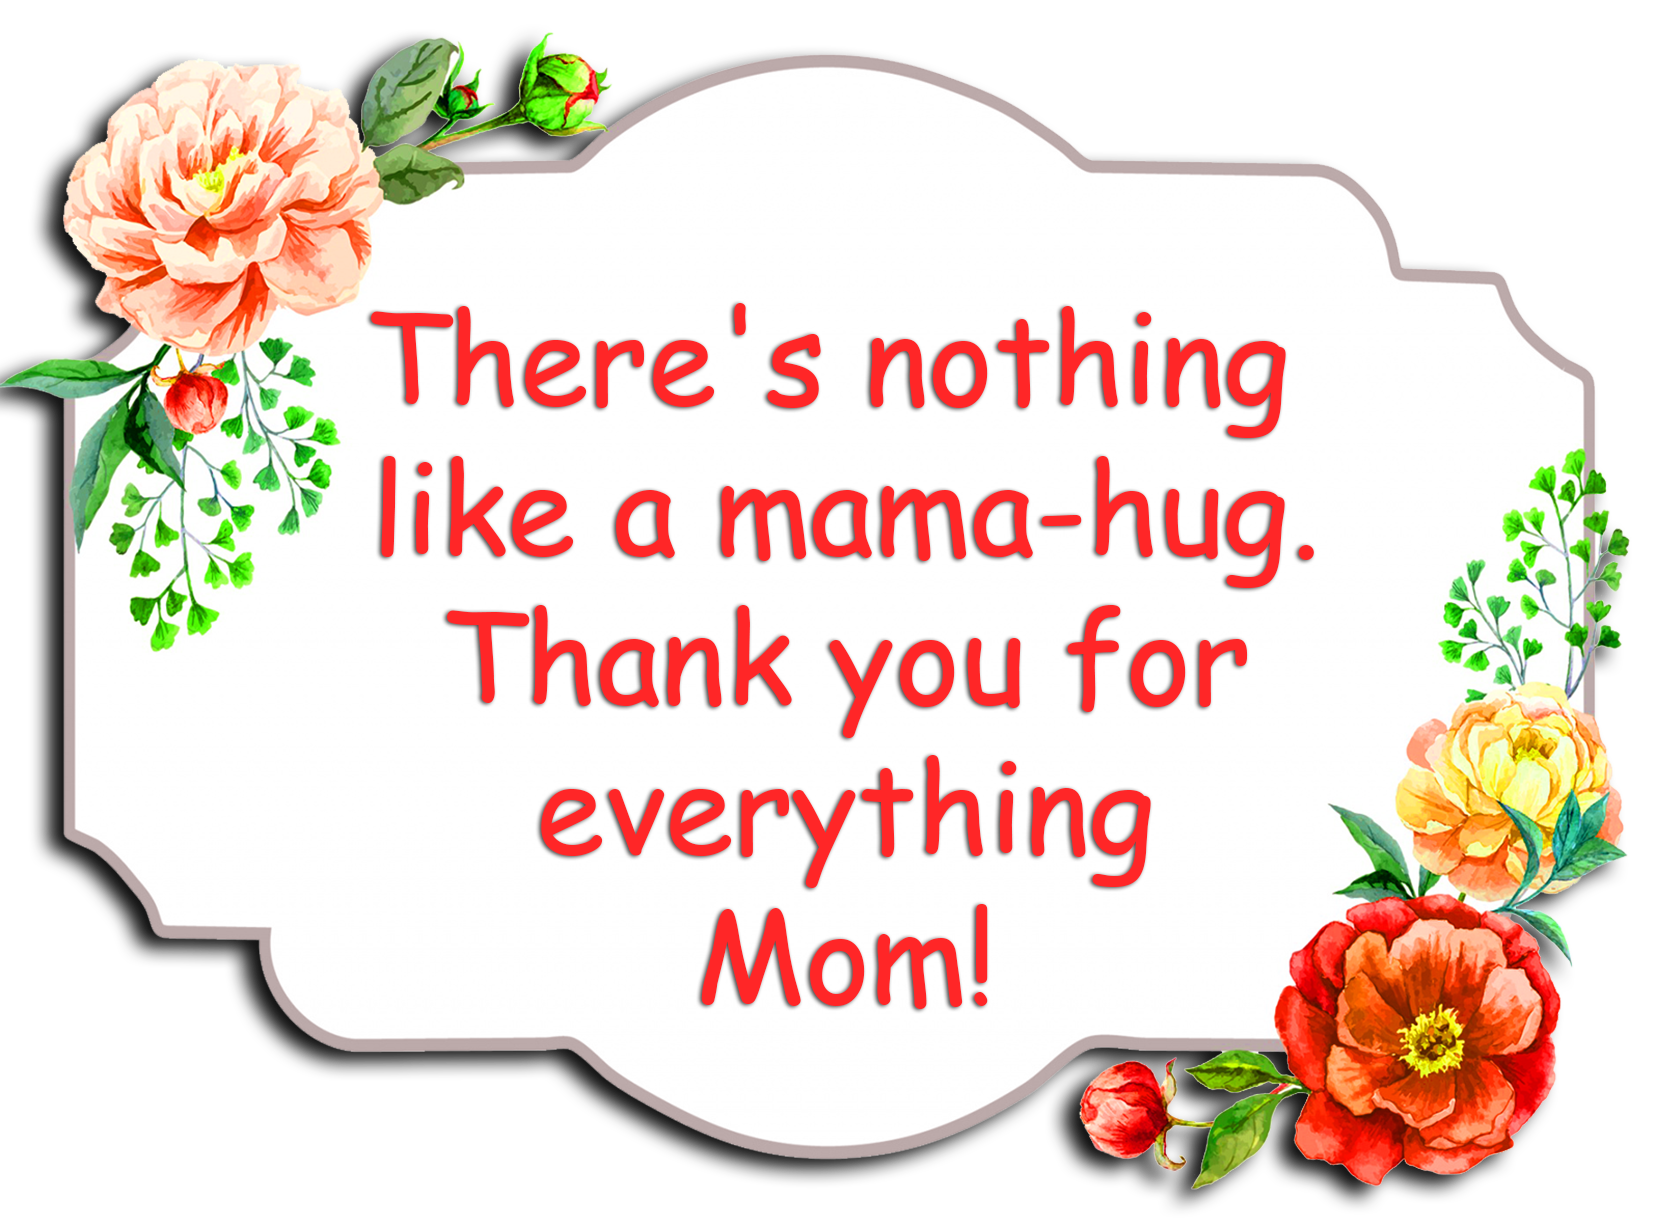 Mom's day greeting with flowers